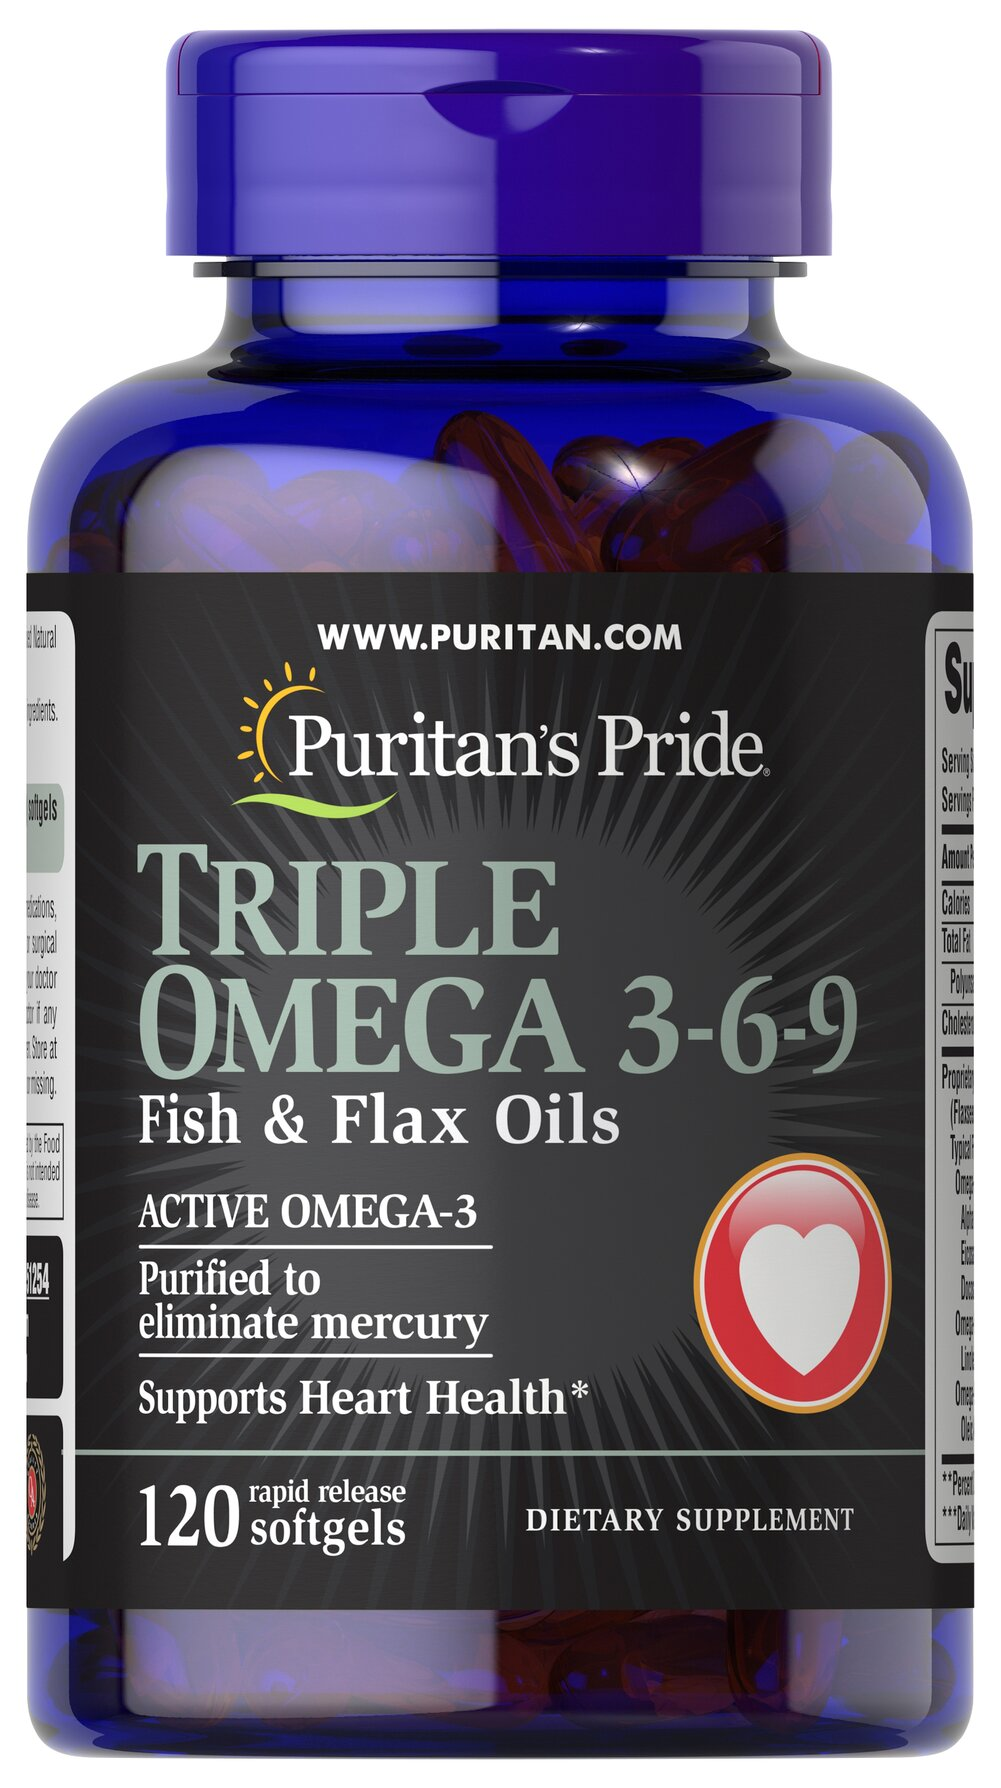 Triple Omega 3-6-9 Fish & Flax Oils Thumbnail Alternate Bottle View